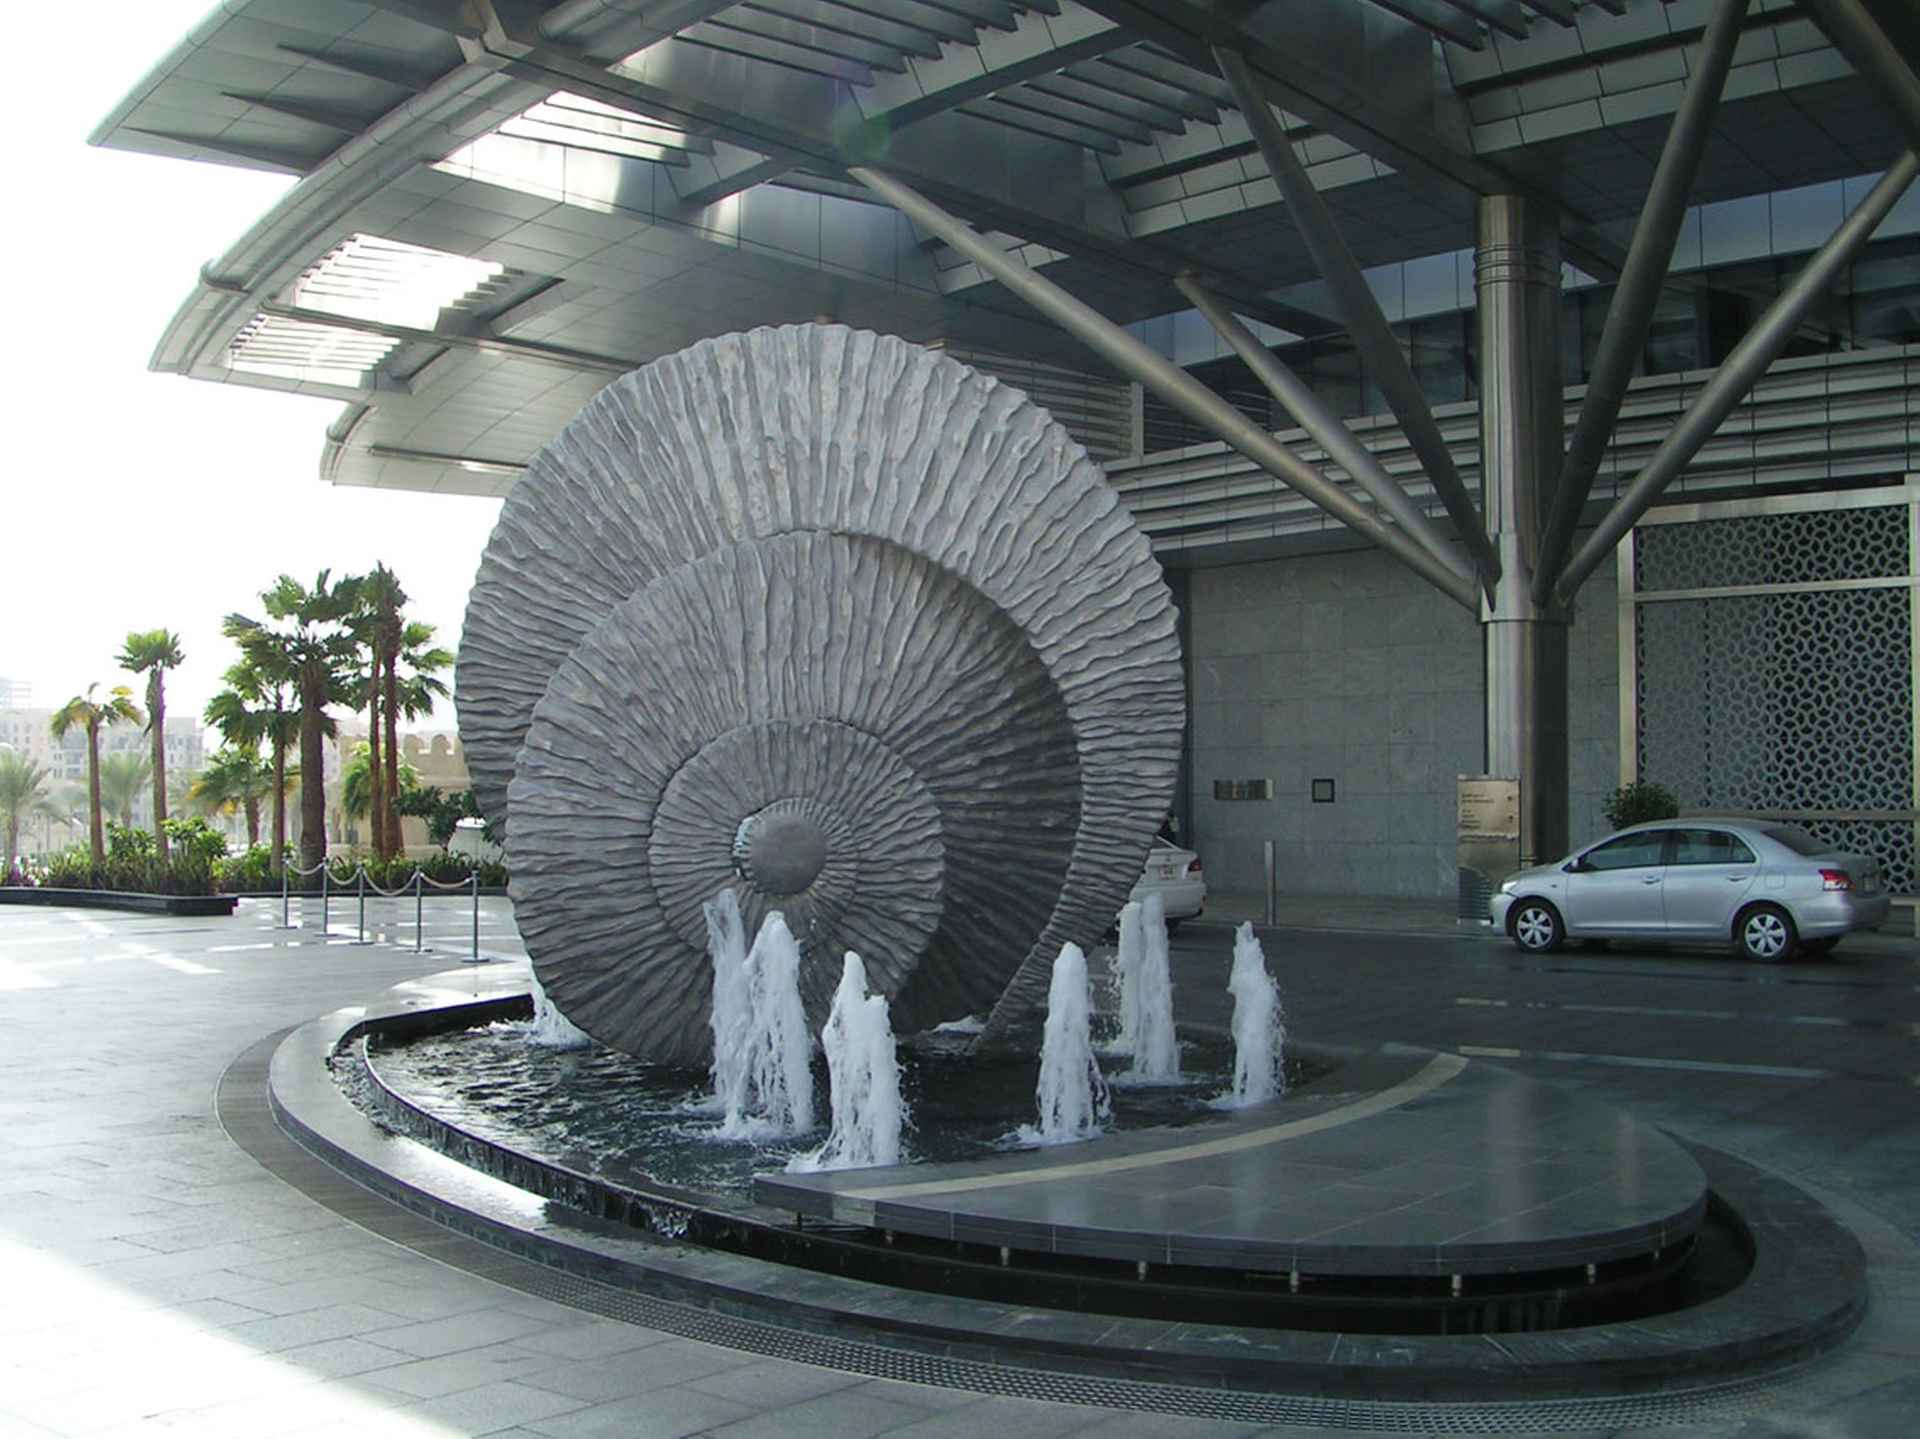 Water feature complimenting the aquatic concept by The Address, Dubai